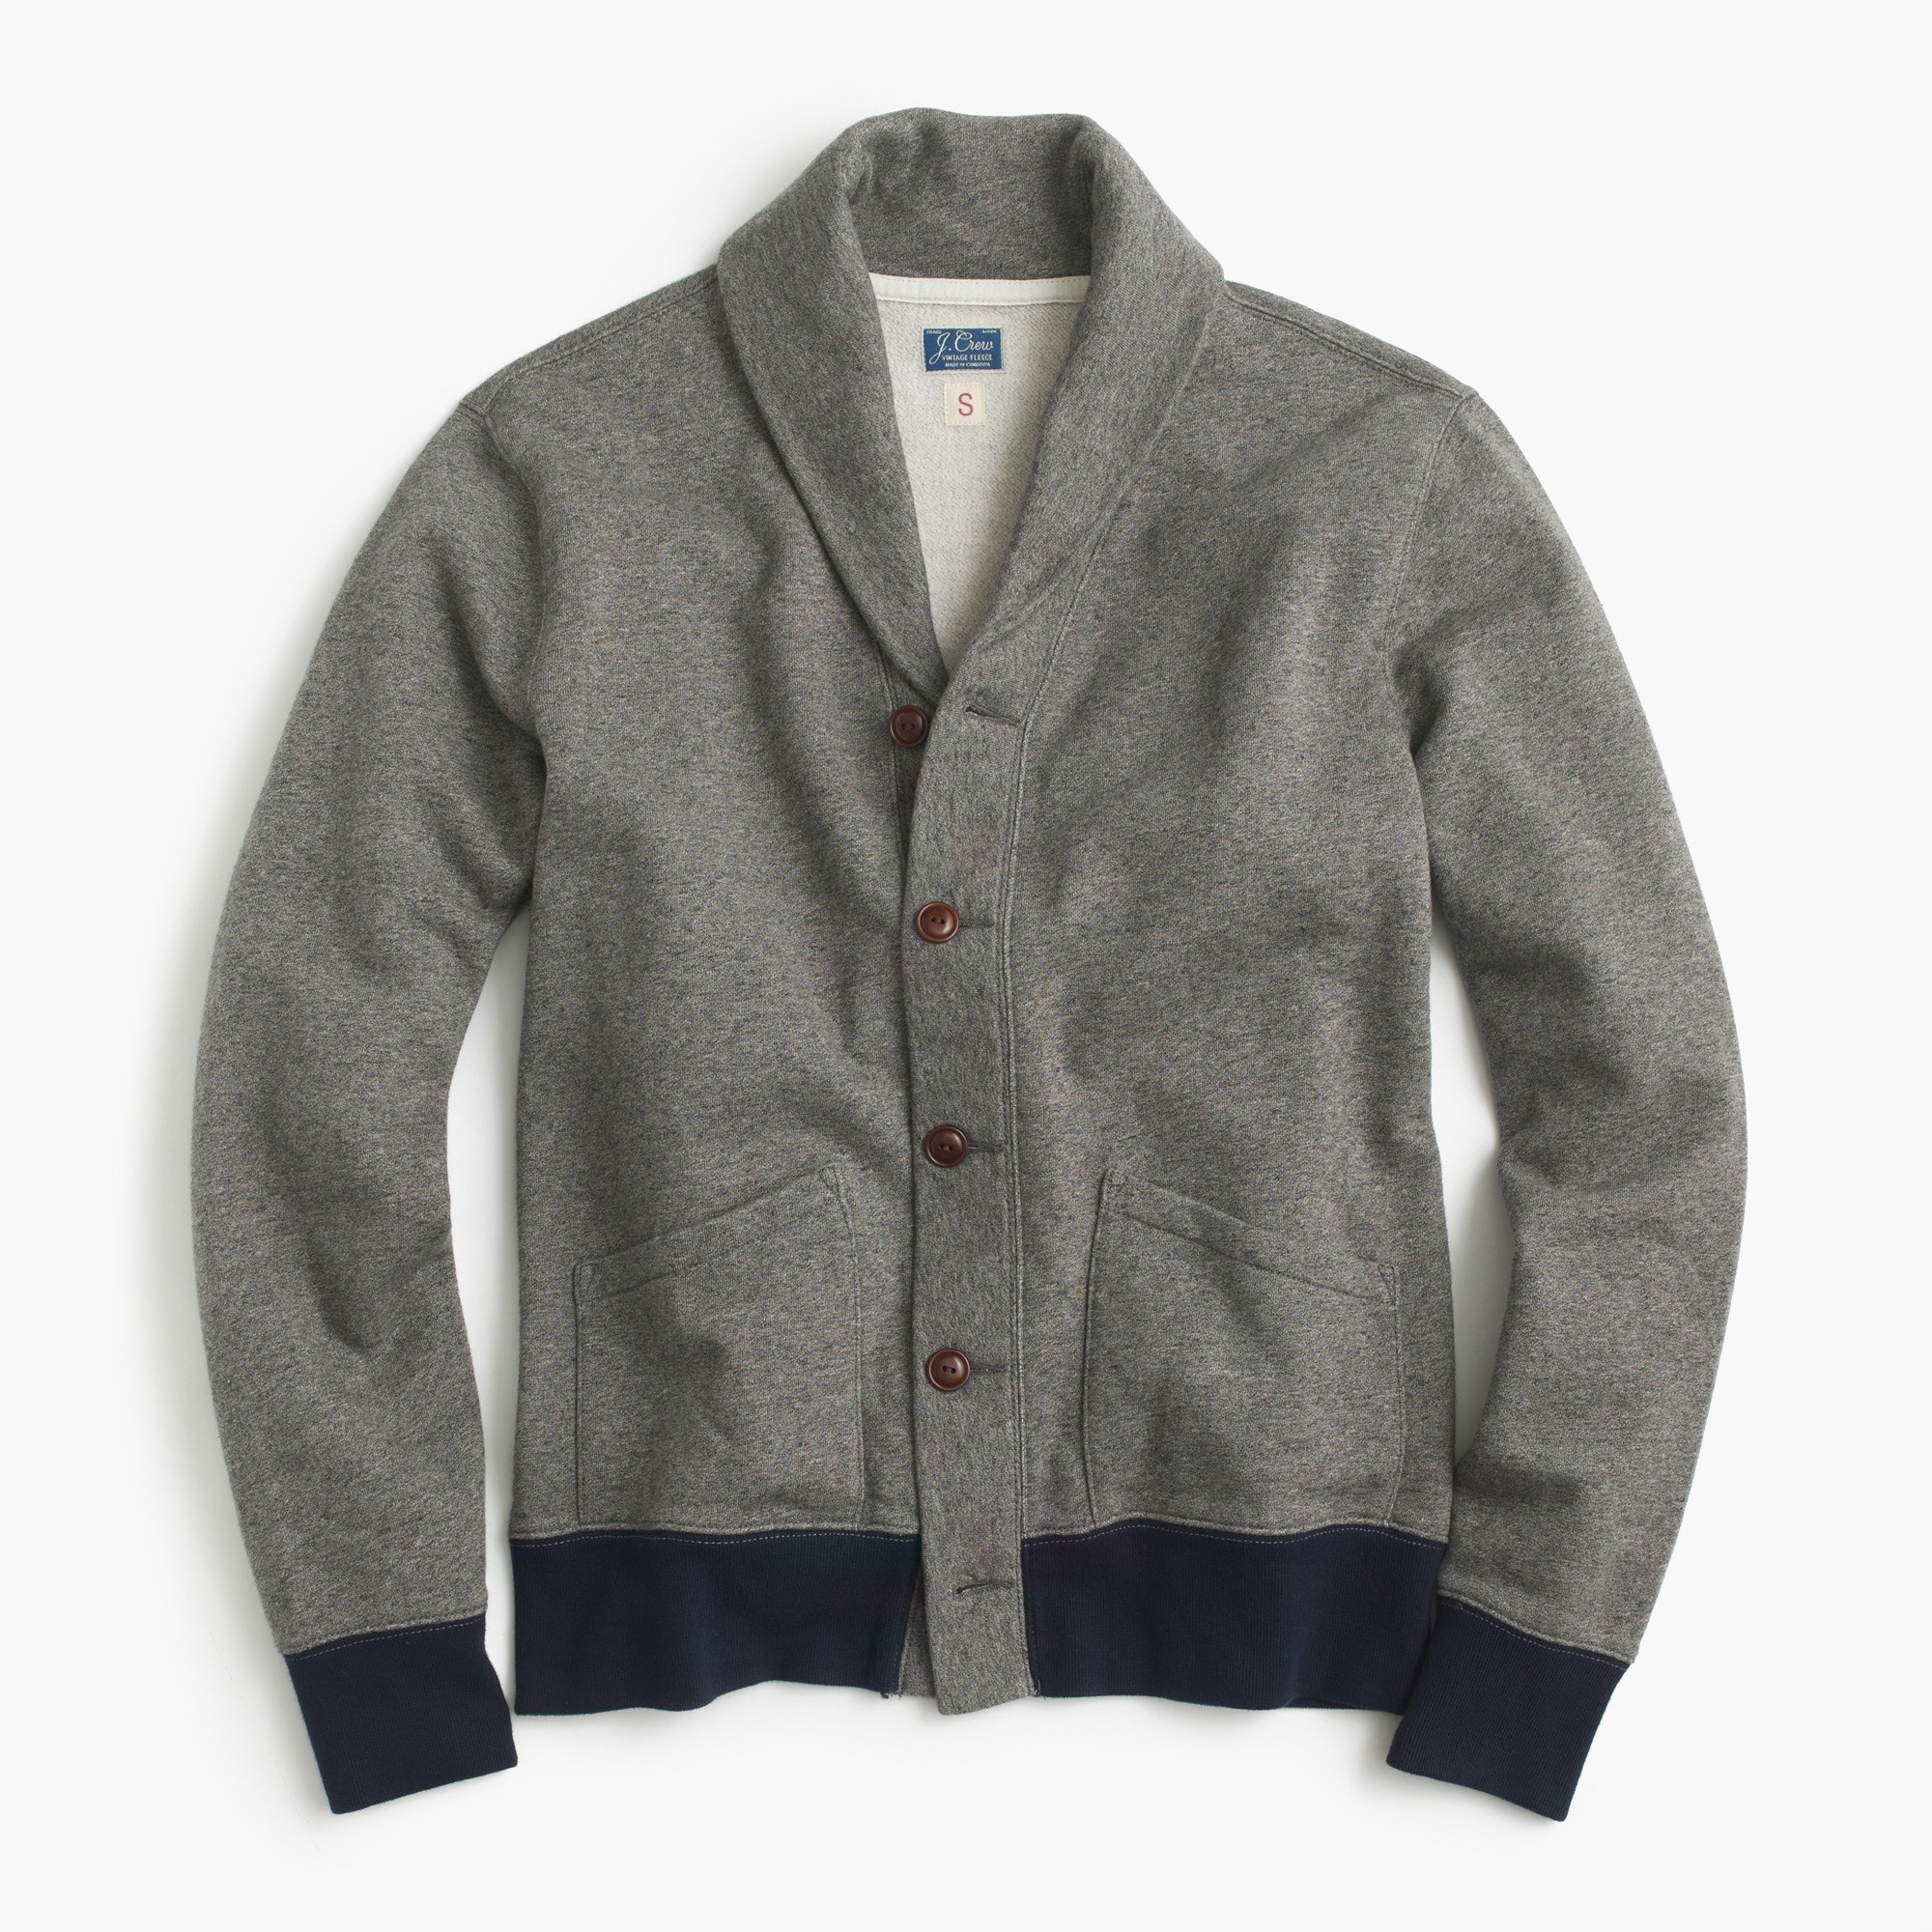 Cotton Shawl-Collar Cardigan Sweater : Men's Cardigans | J.Crew